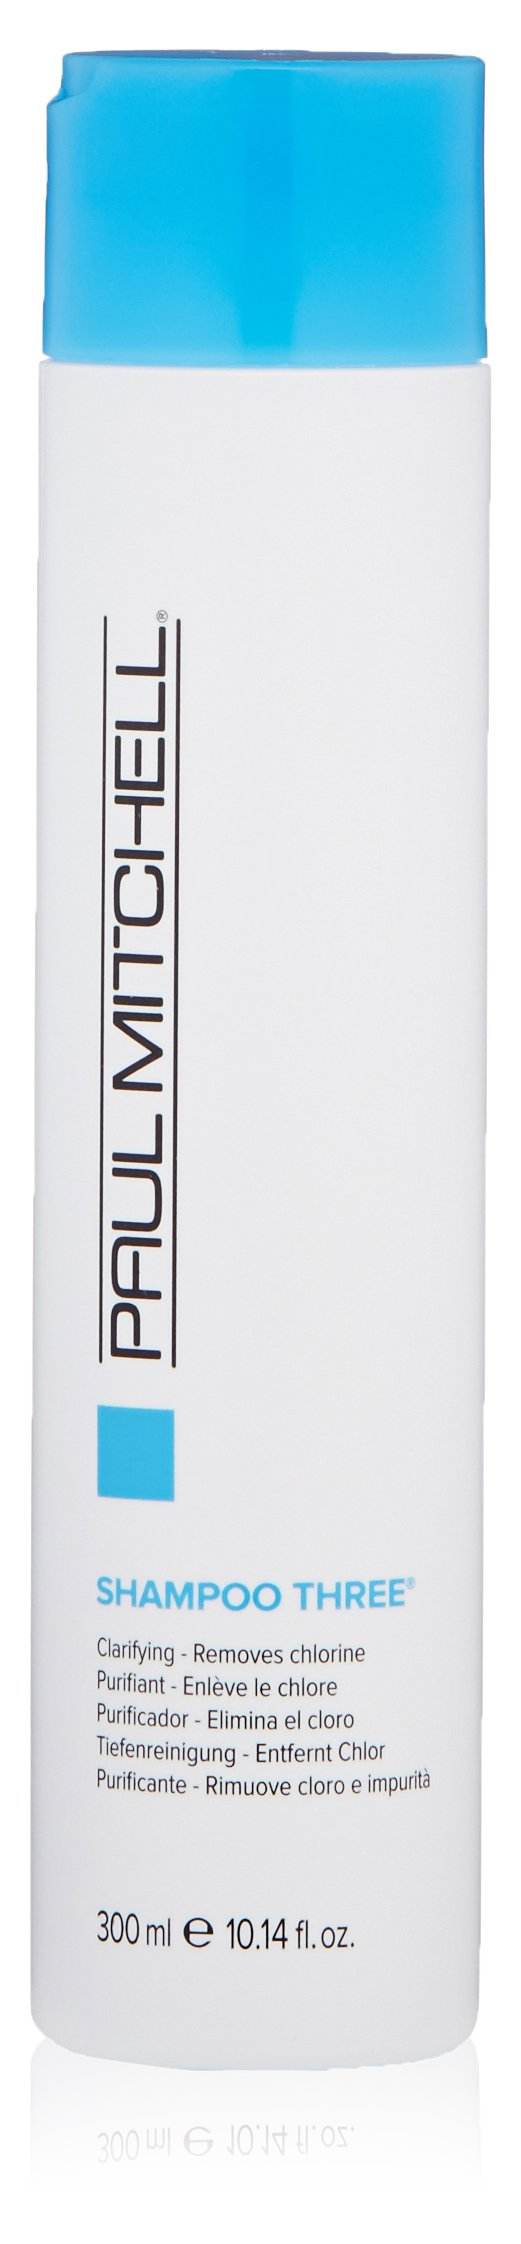 Paul Mitchell Shampoo Three,10.14 Fl Oz